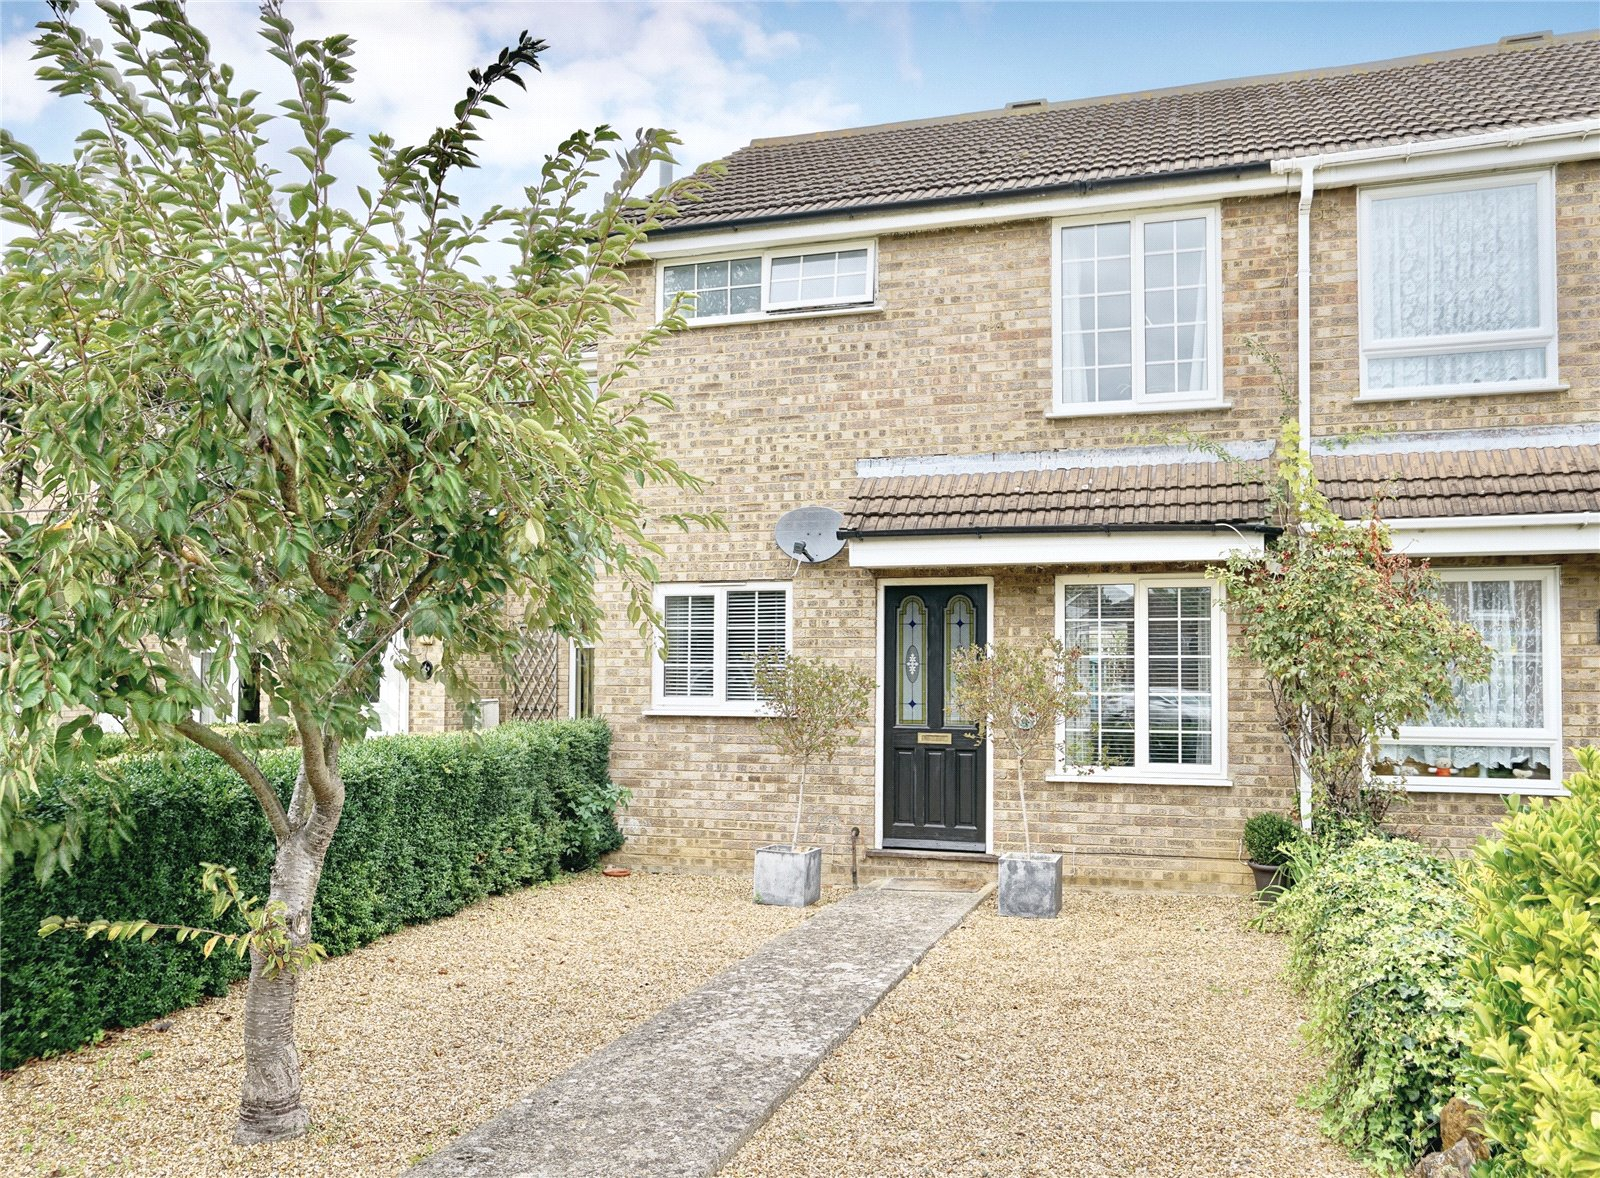 3 bed house for sale in Eaton Ford, Alamein Court, PE19 7JL, PE19